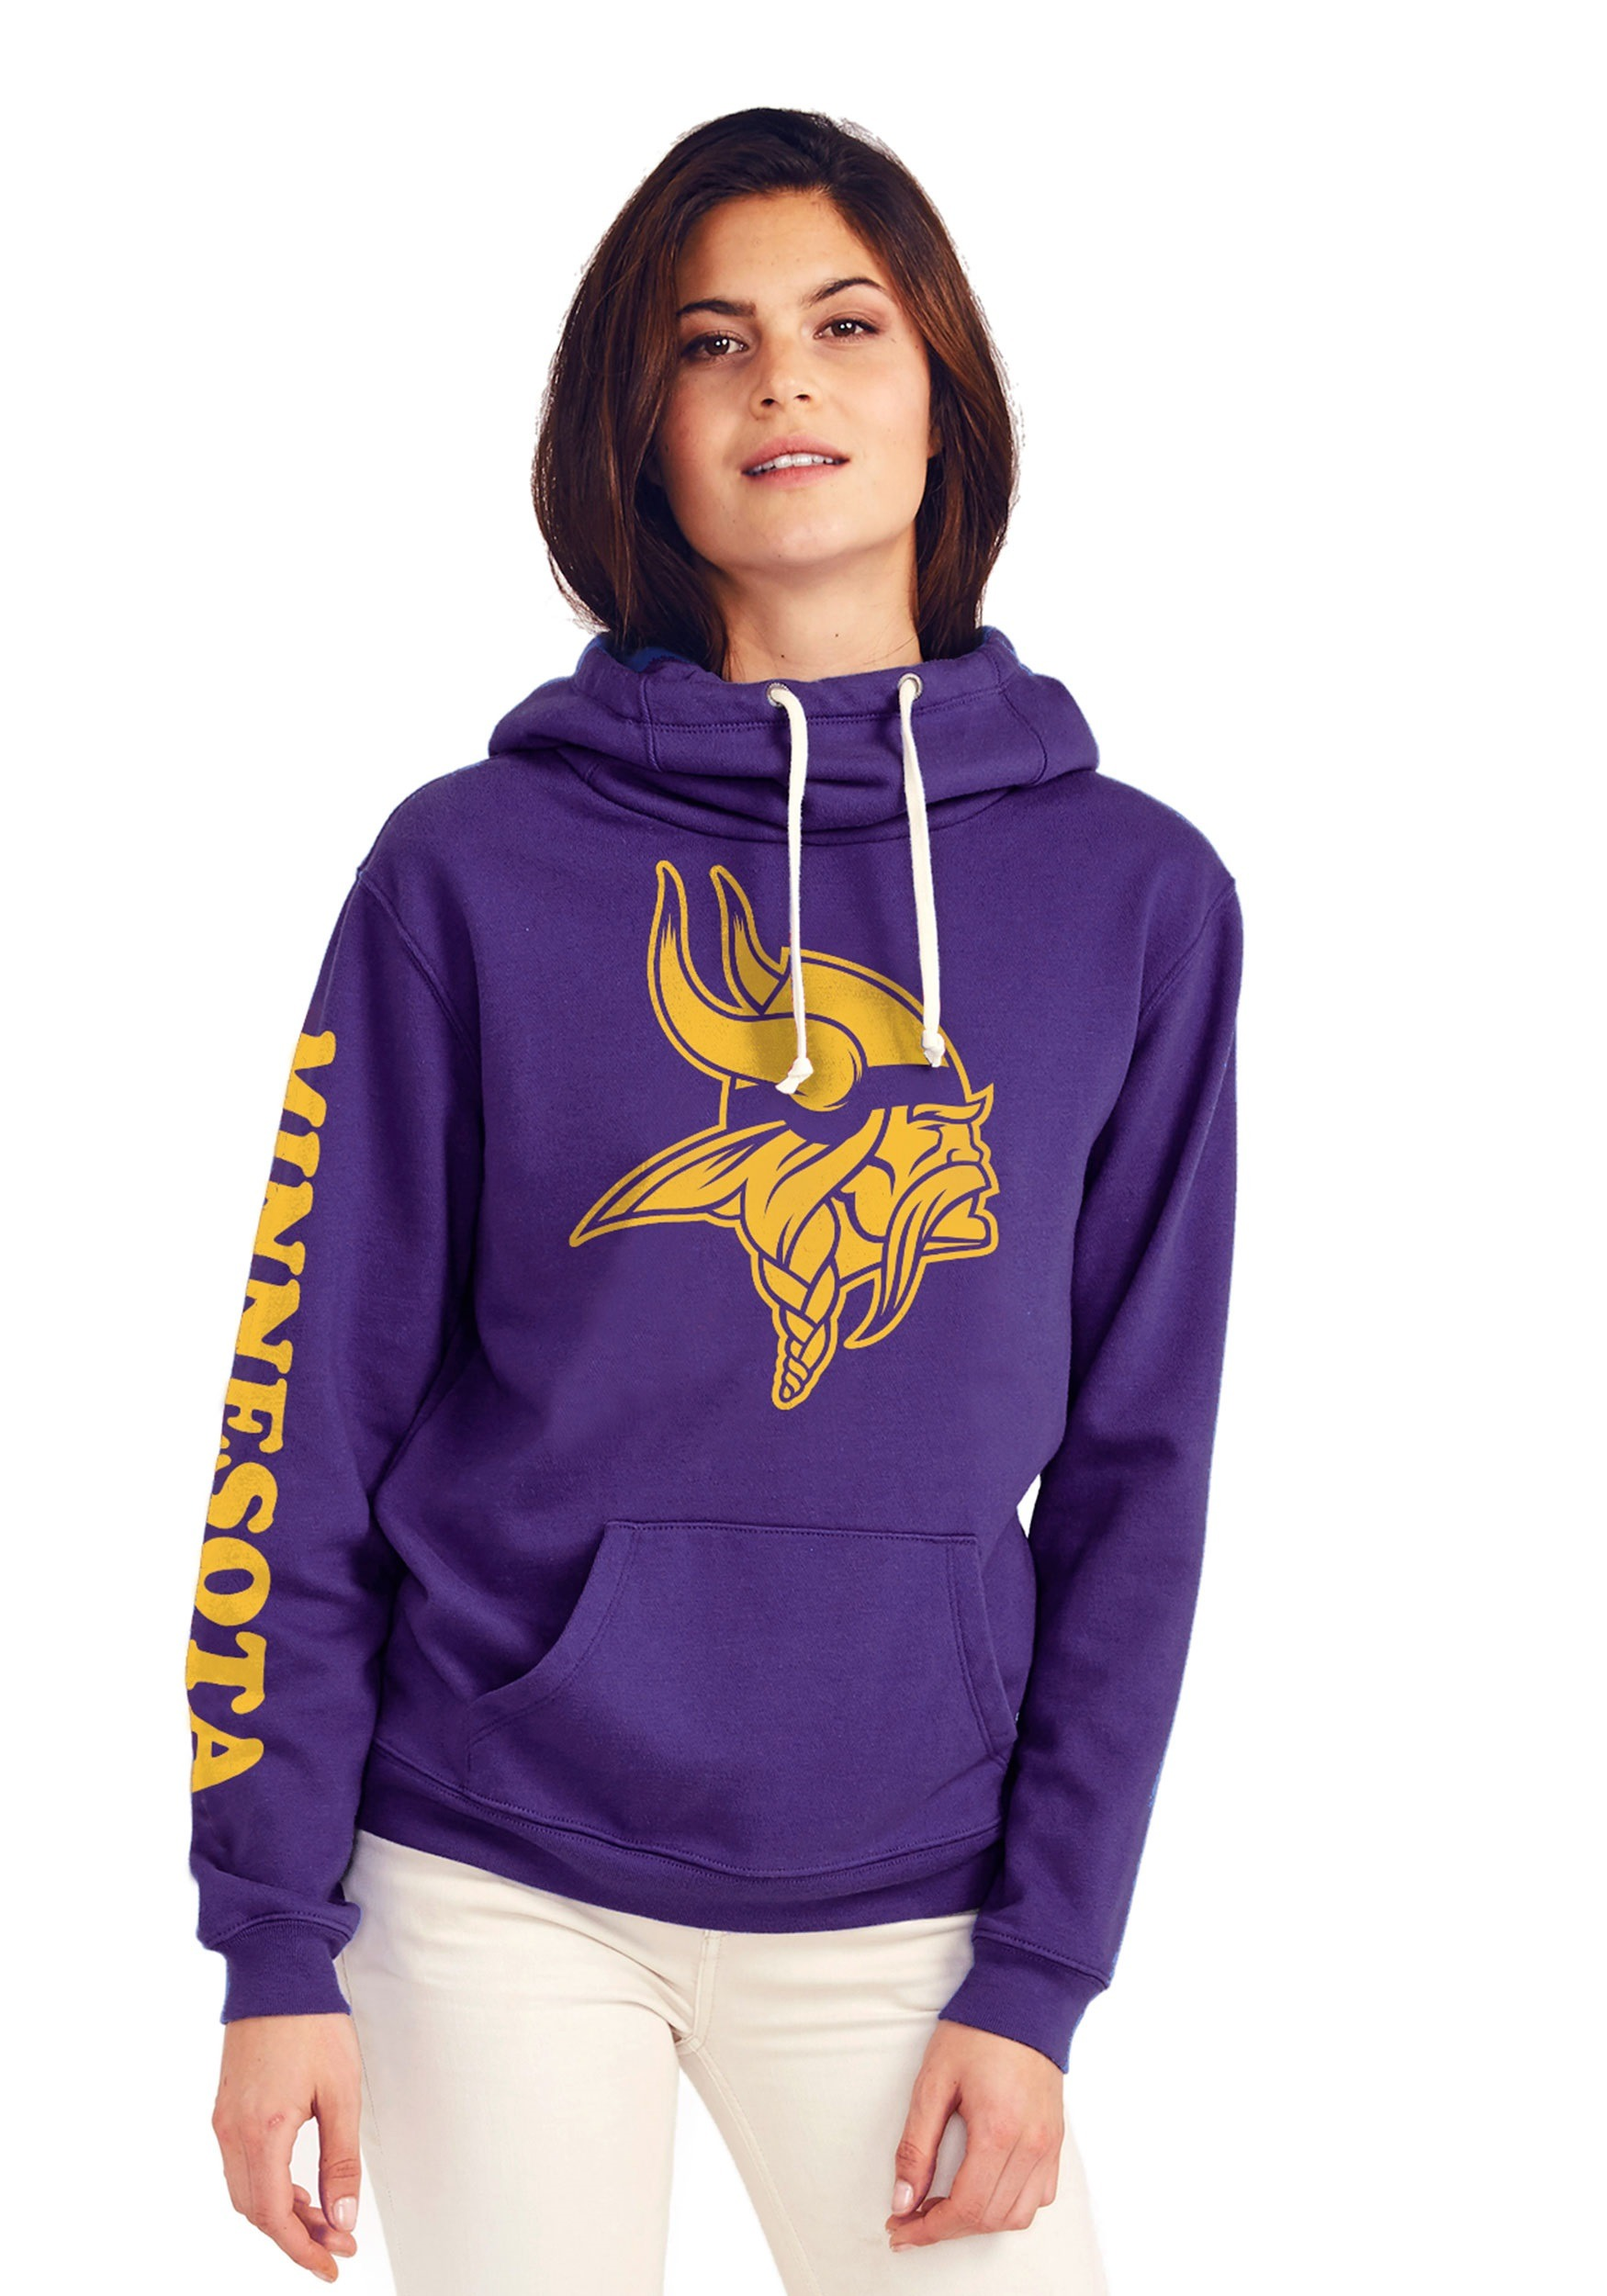 competitive price 00850 bc98d Minnesota Vikings Women's Cowl Neck Hooded Sweatshirt